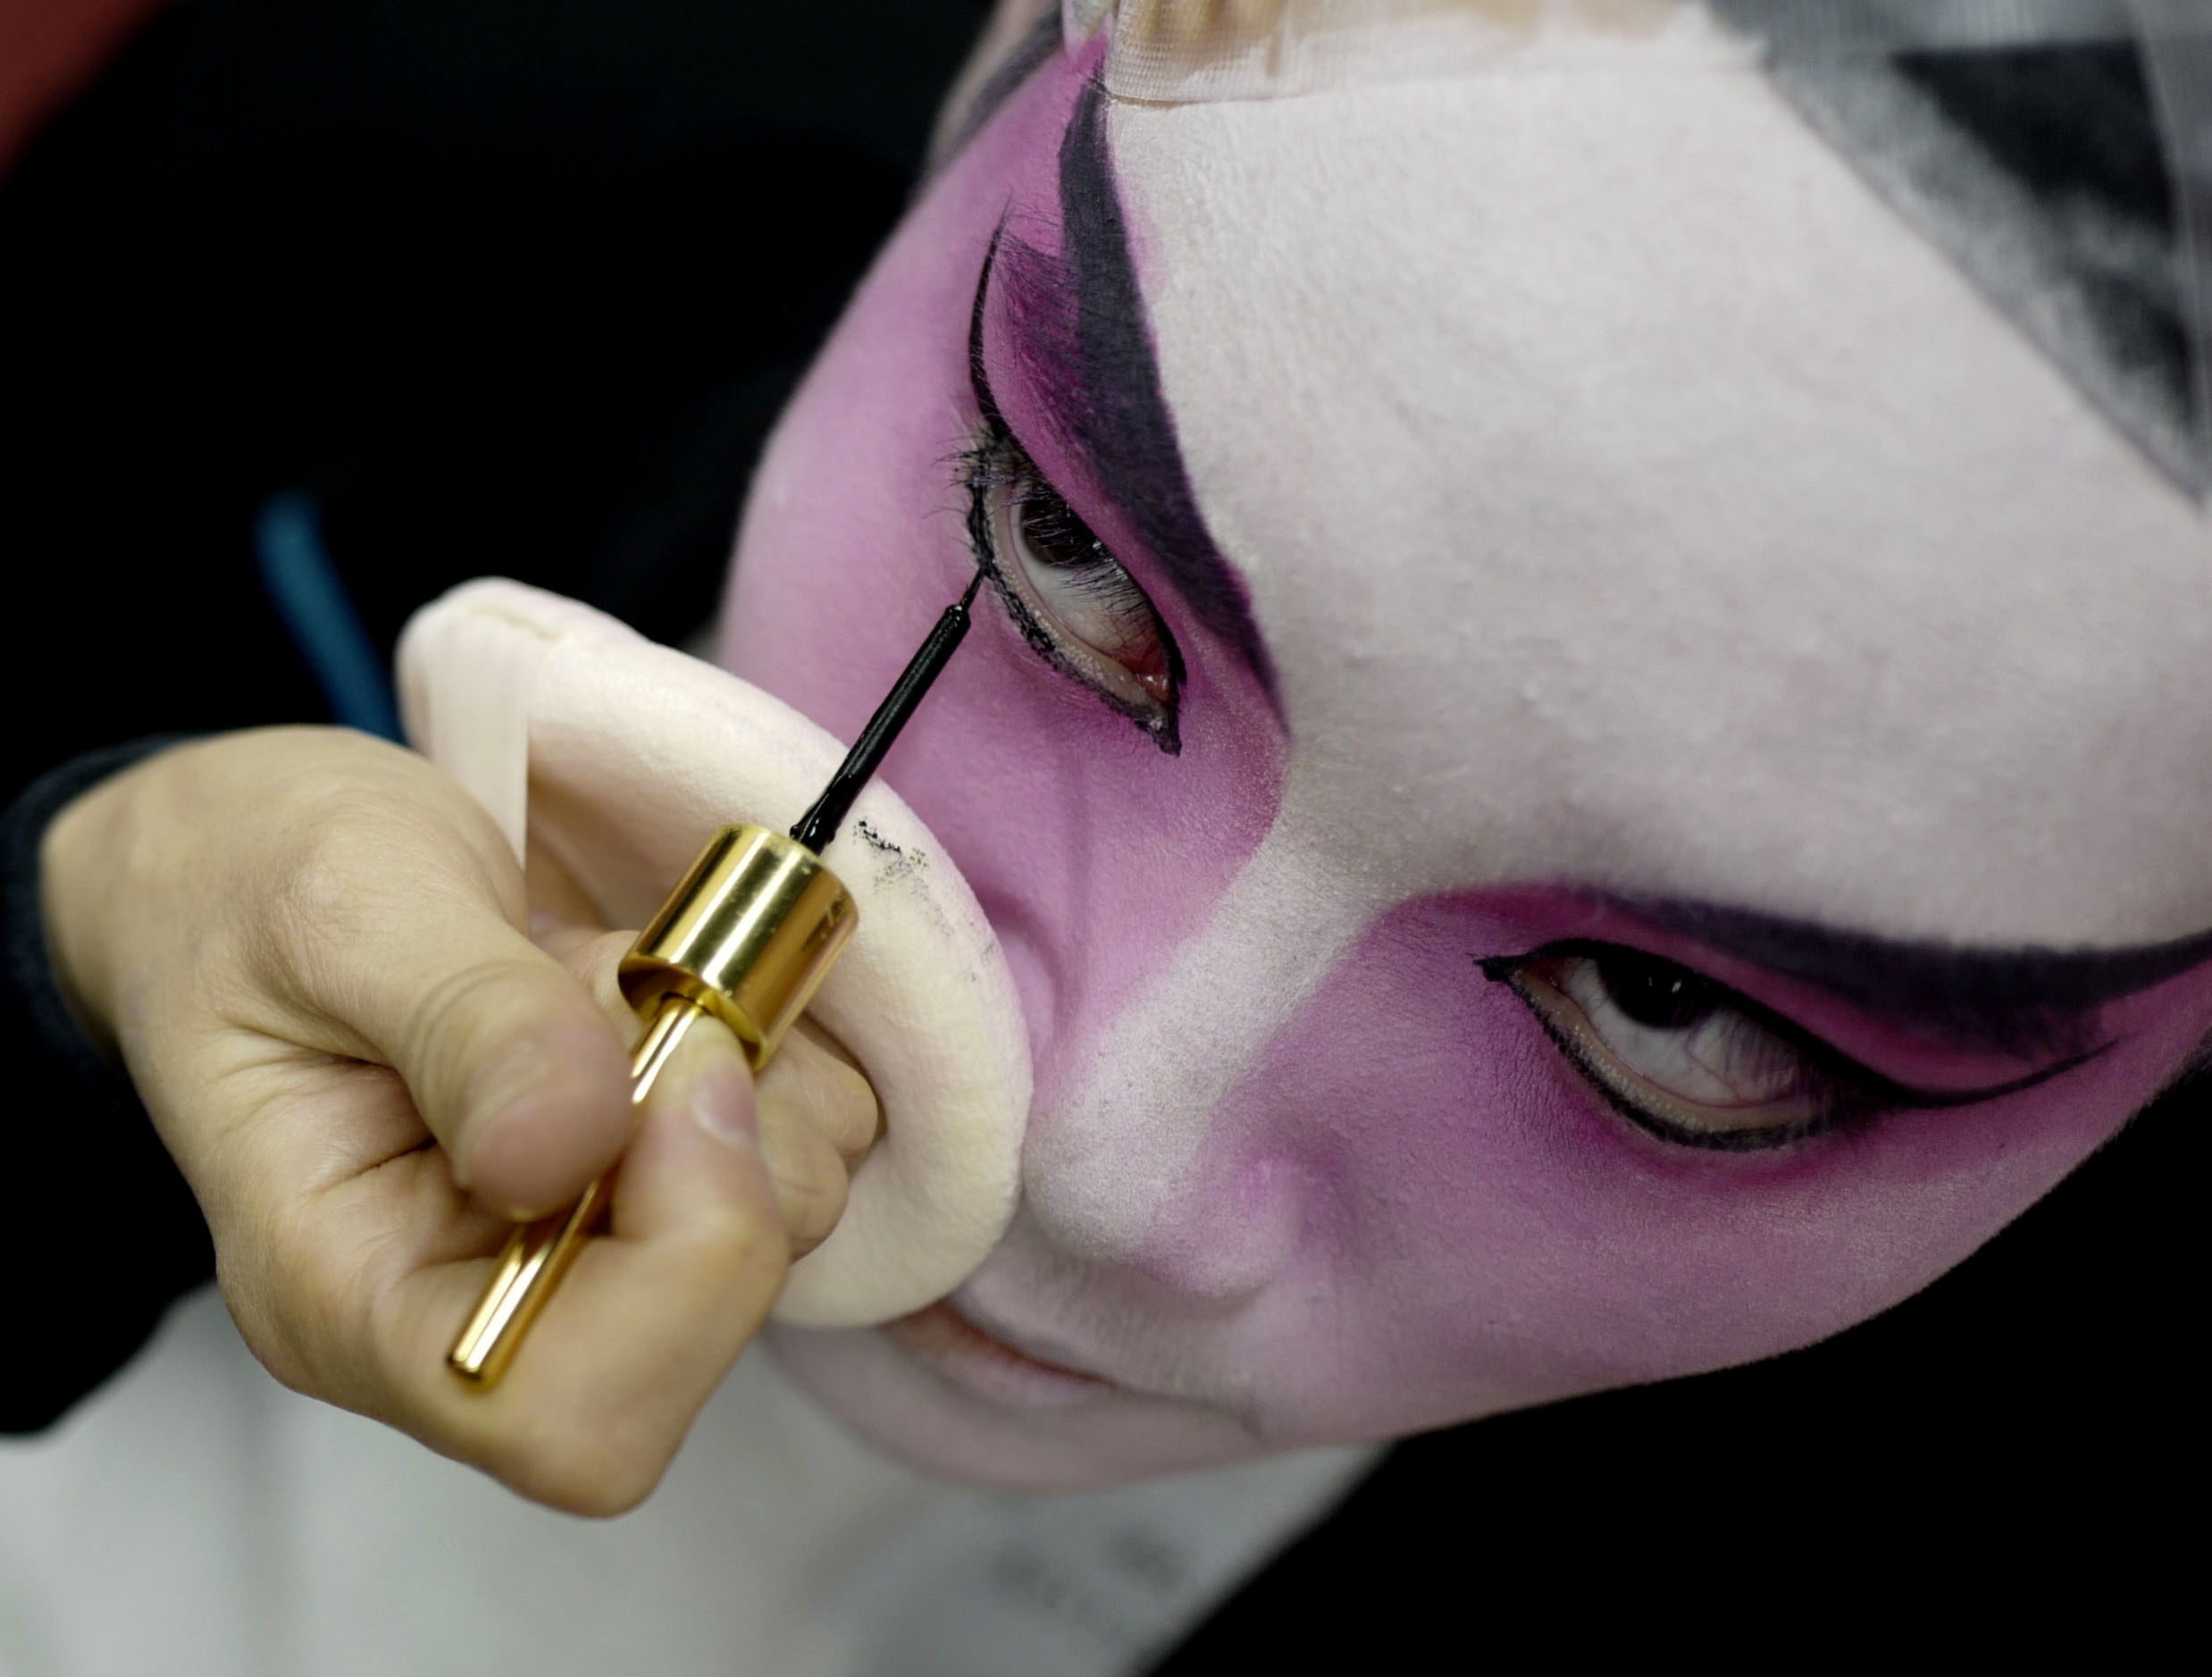 A young opera artist is applied a makeup before a performance during the Children's Cantonese Opera 2018 at Rosemead High School on Jan. 13, 2018.